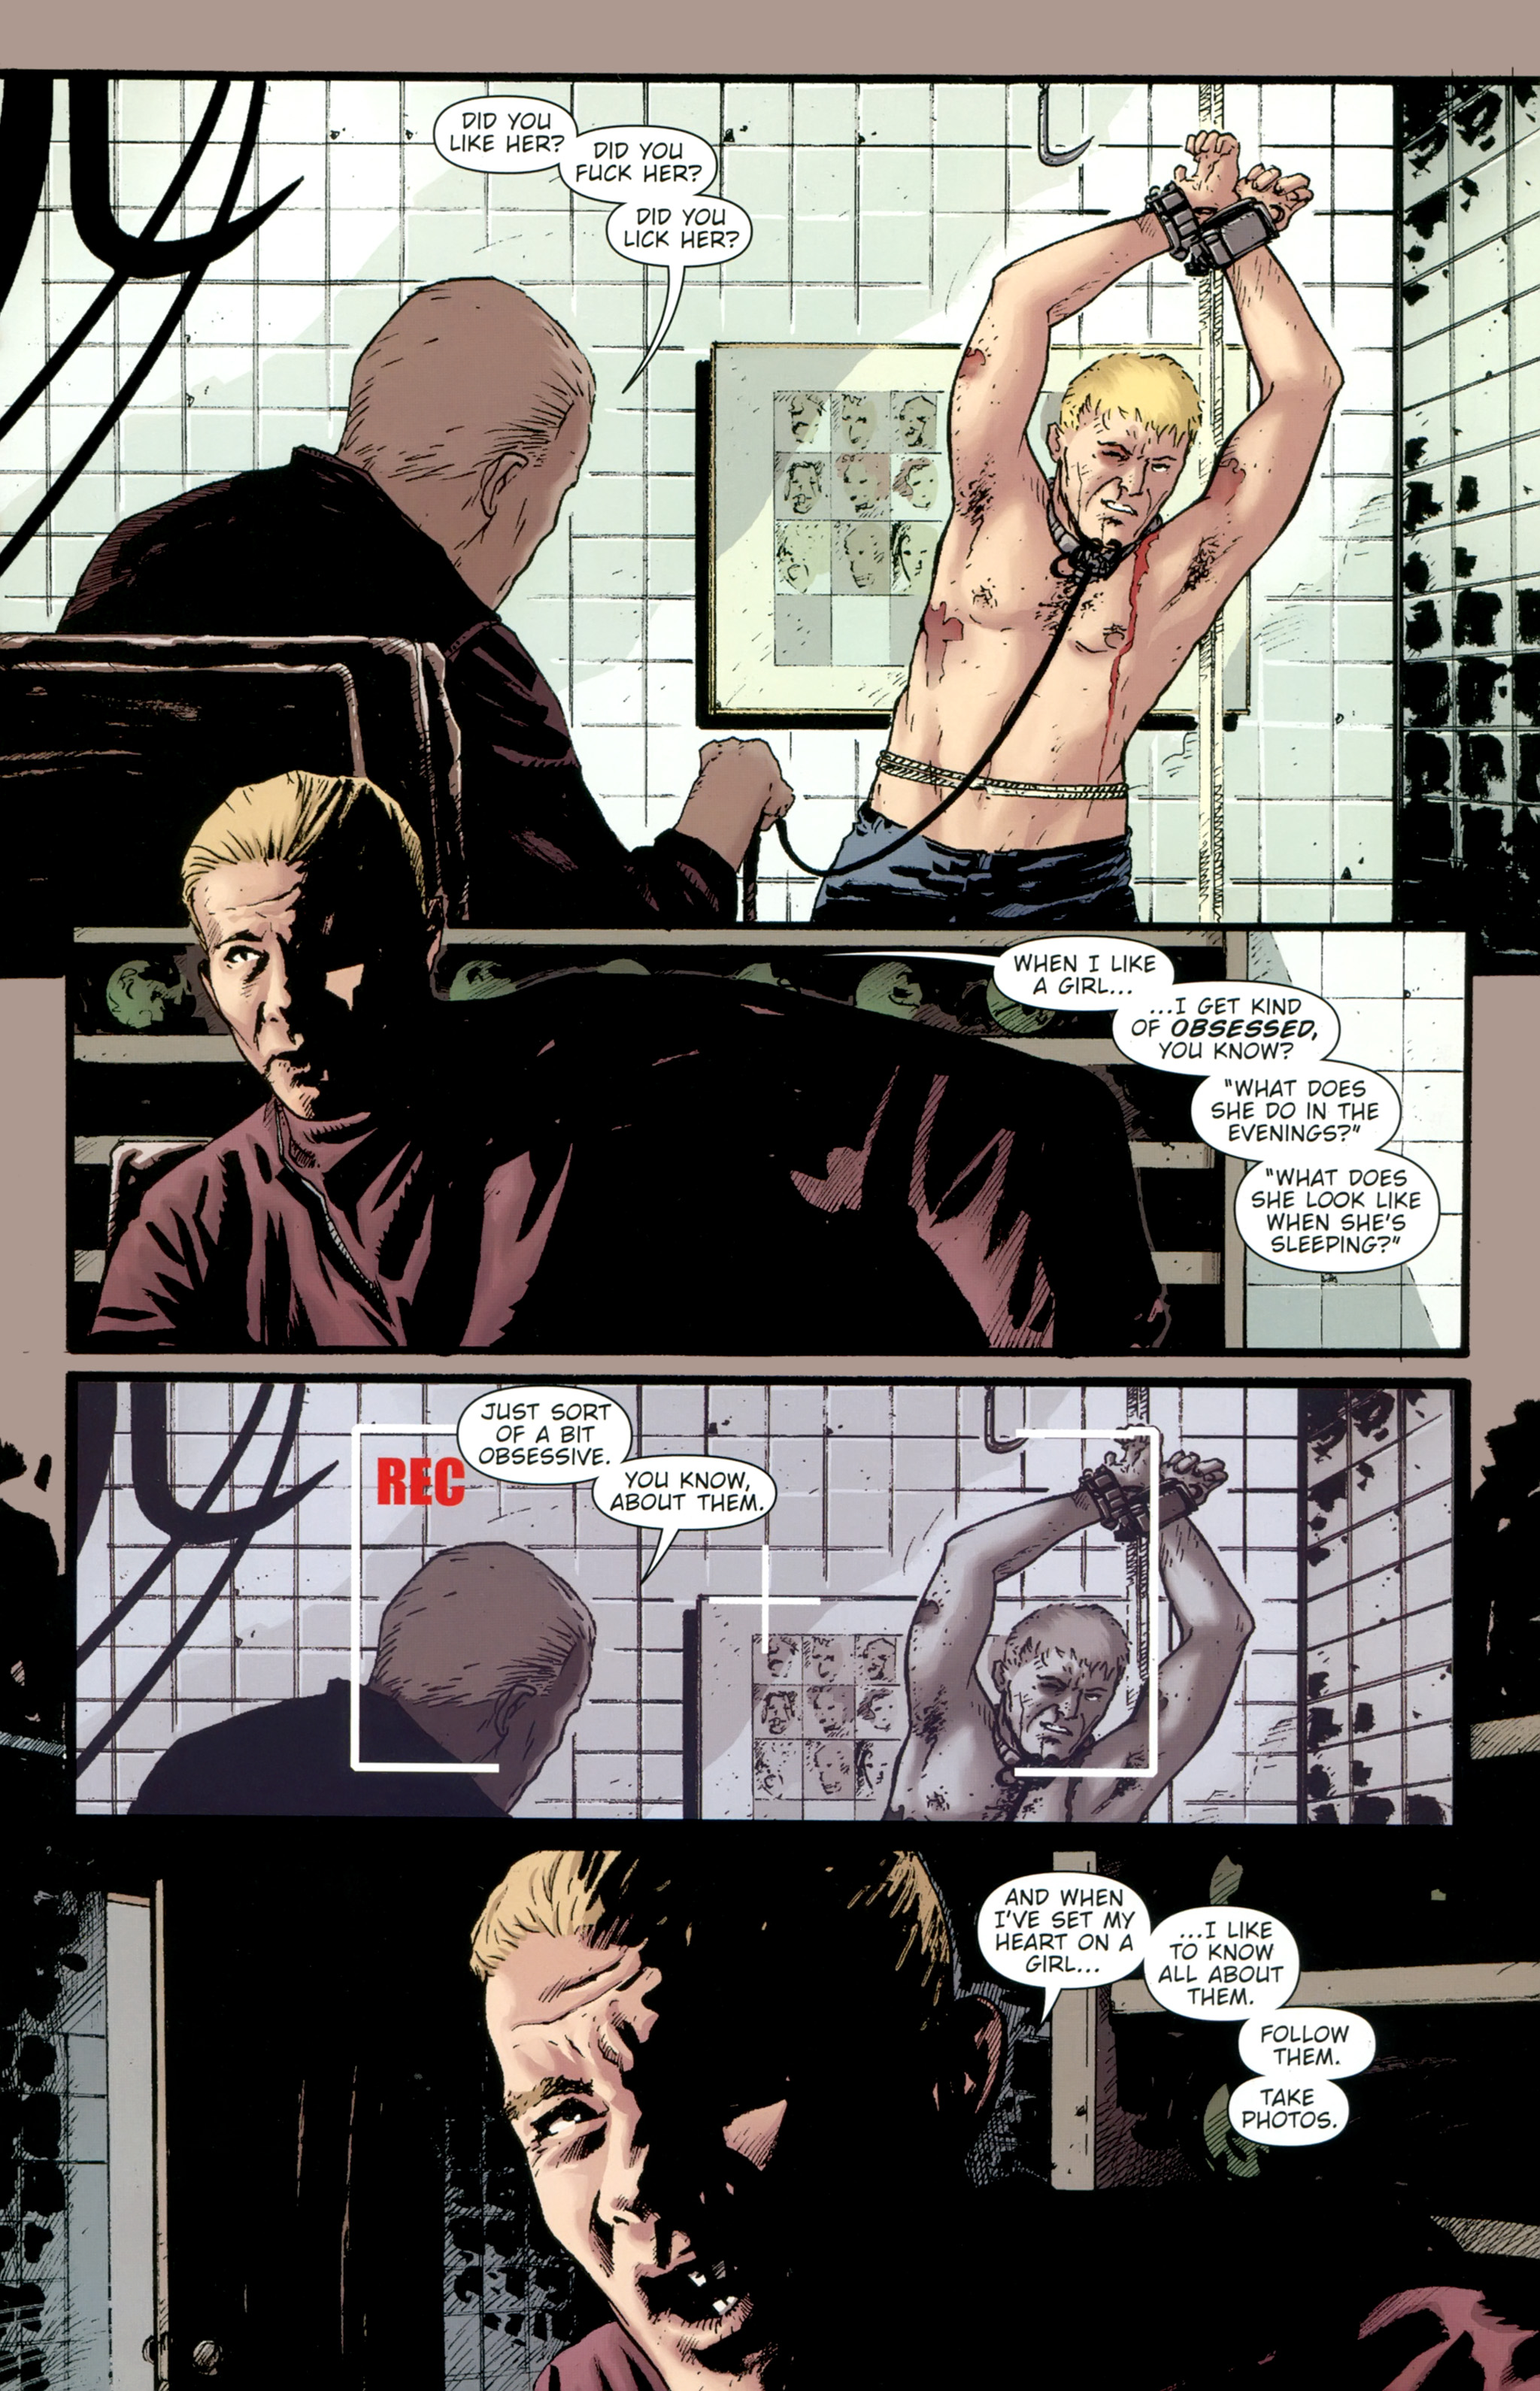 Read online The Girl With the Dragon Tattoo comic -  Issue # TPB 2 - 87